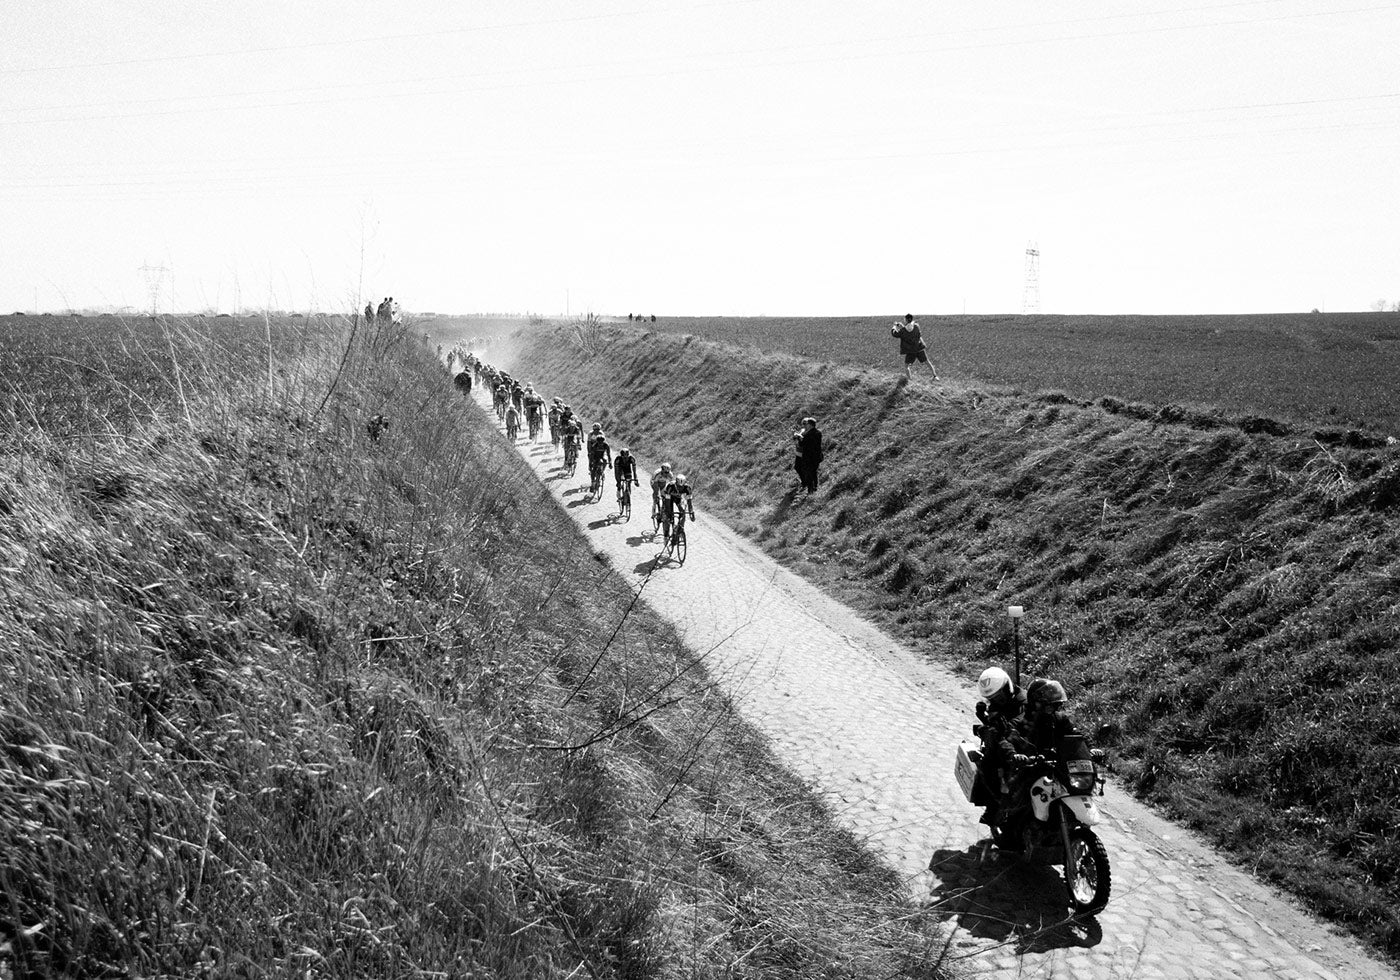 Riding the Paris Roubaix